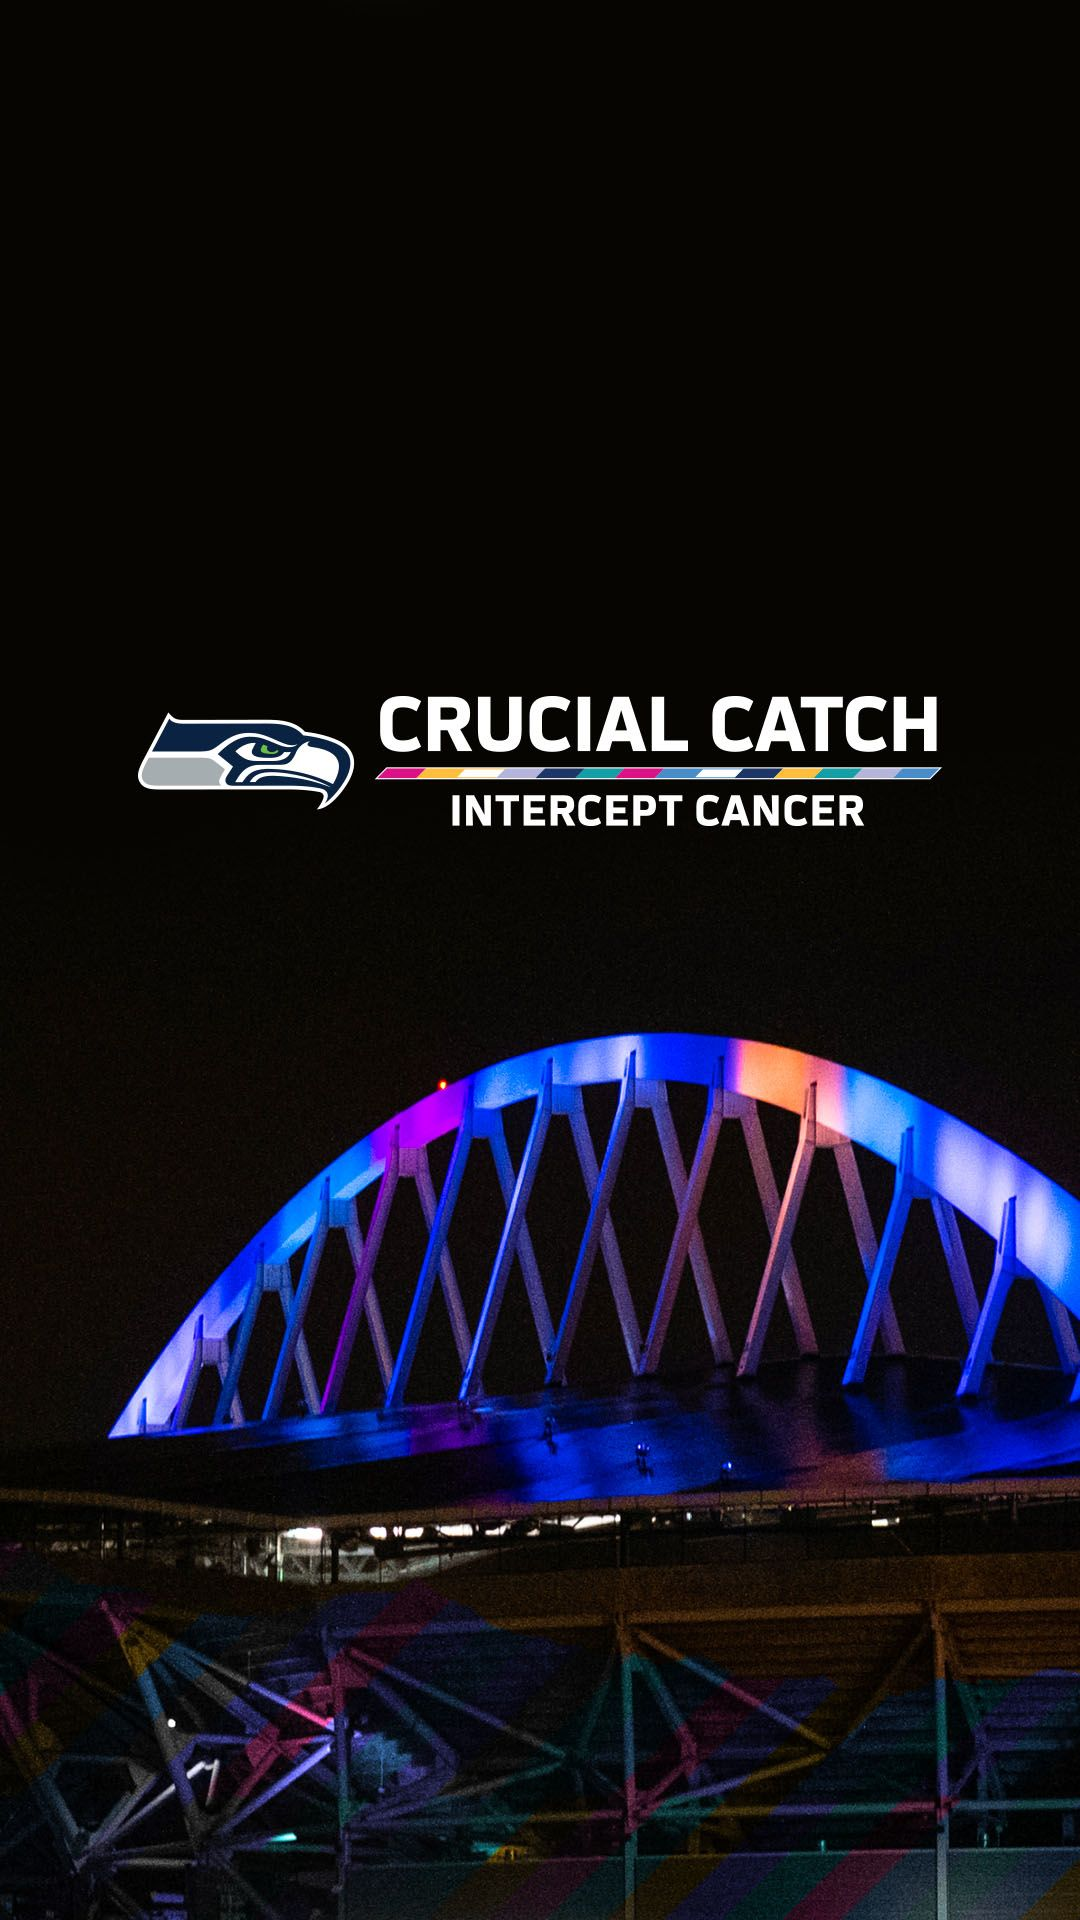 Crucial Catch - Intercept Cancer